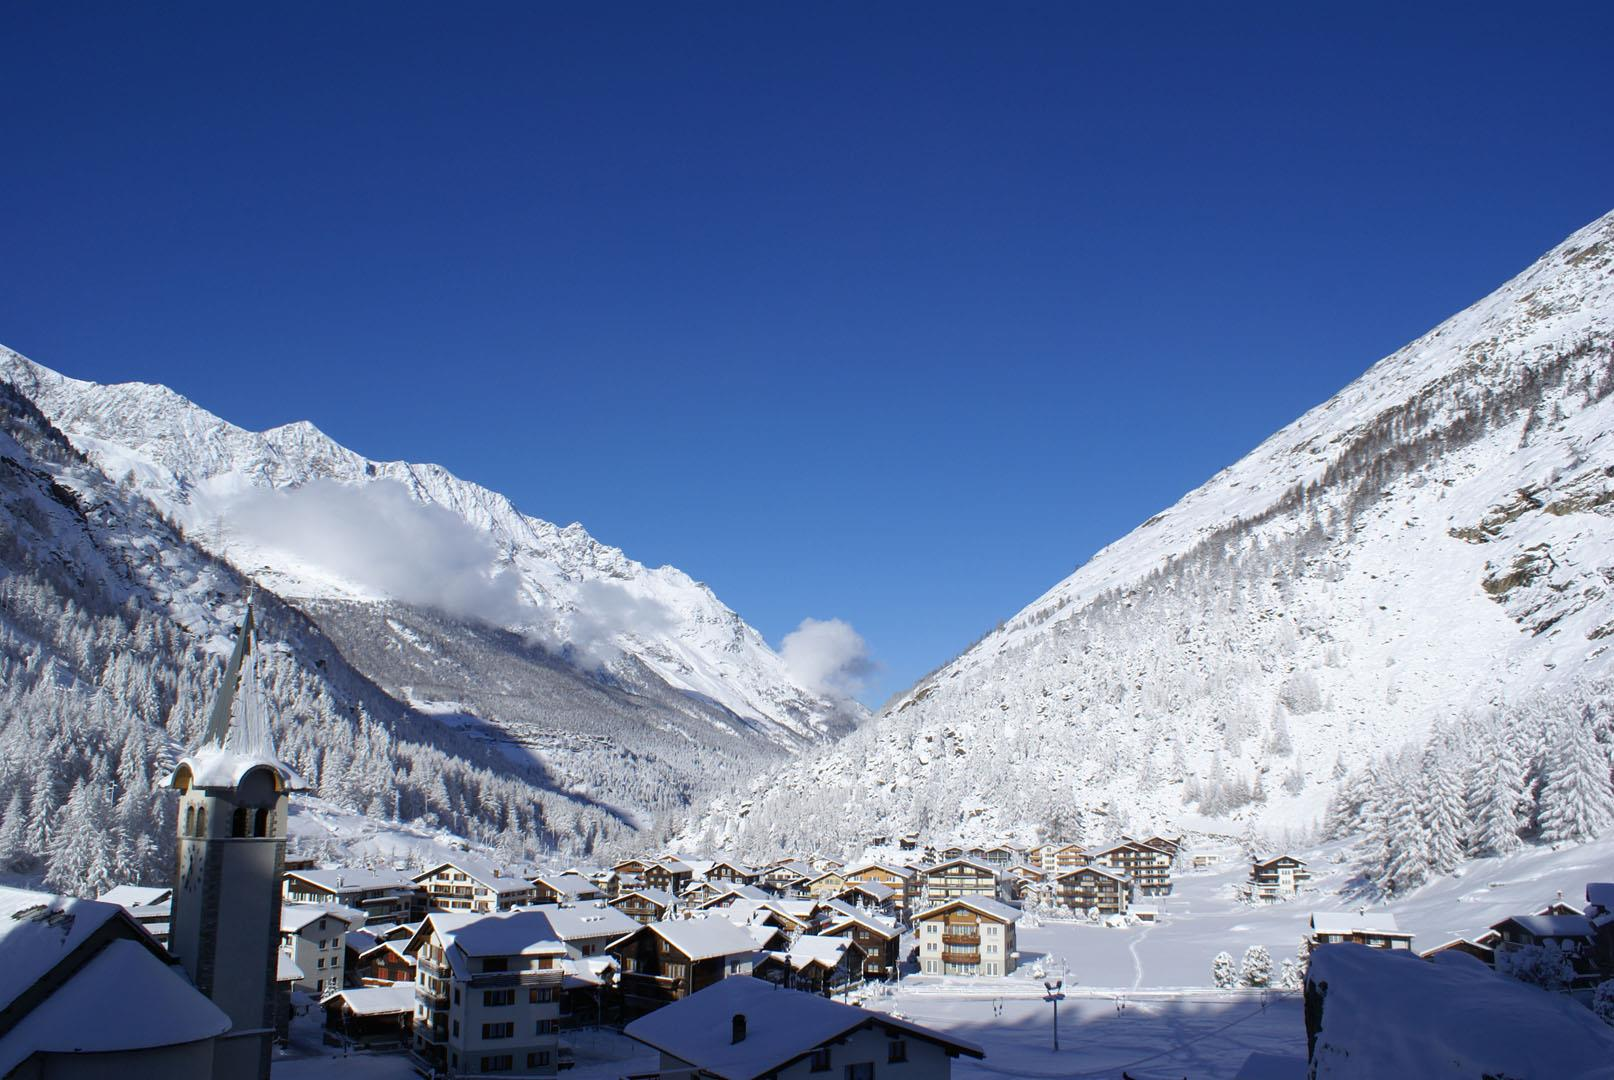 Resort Saas Fee